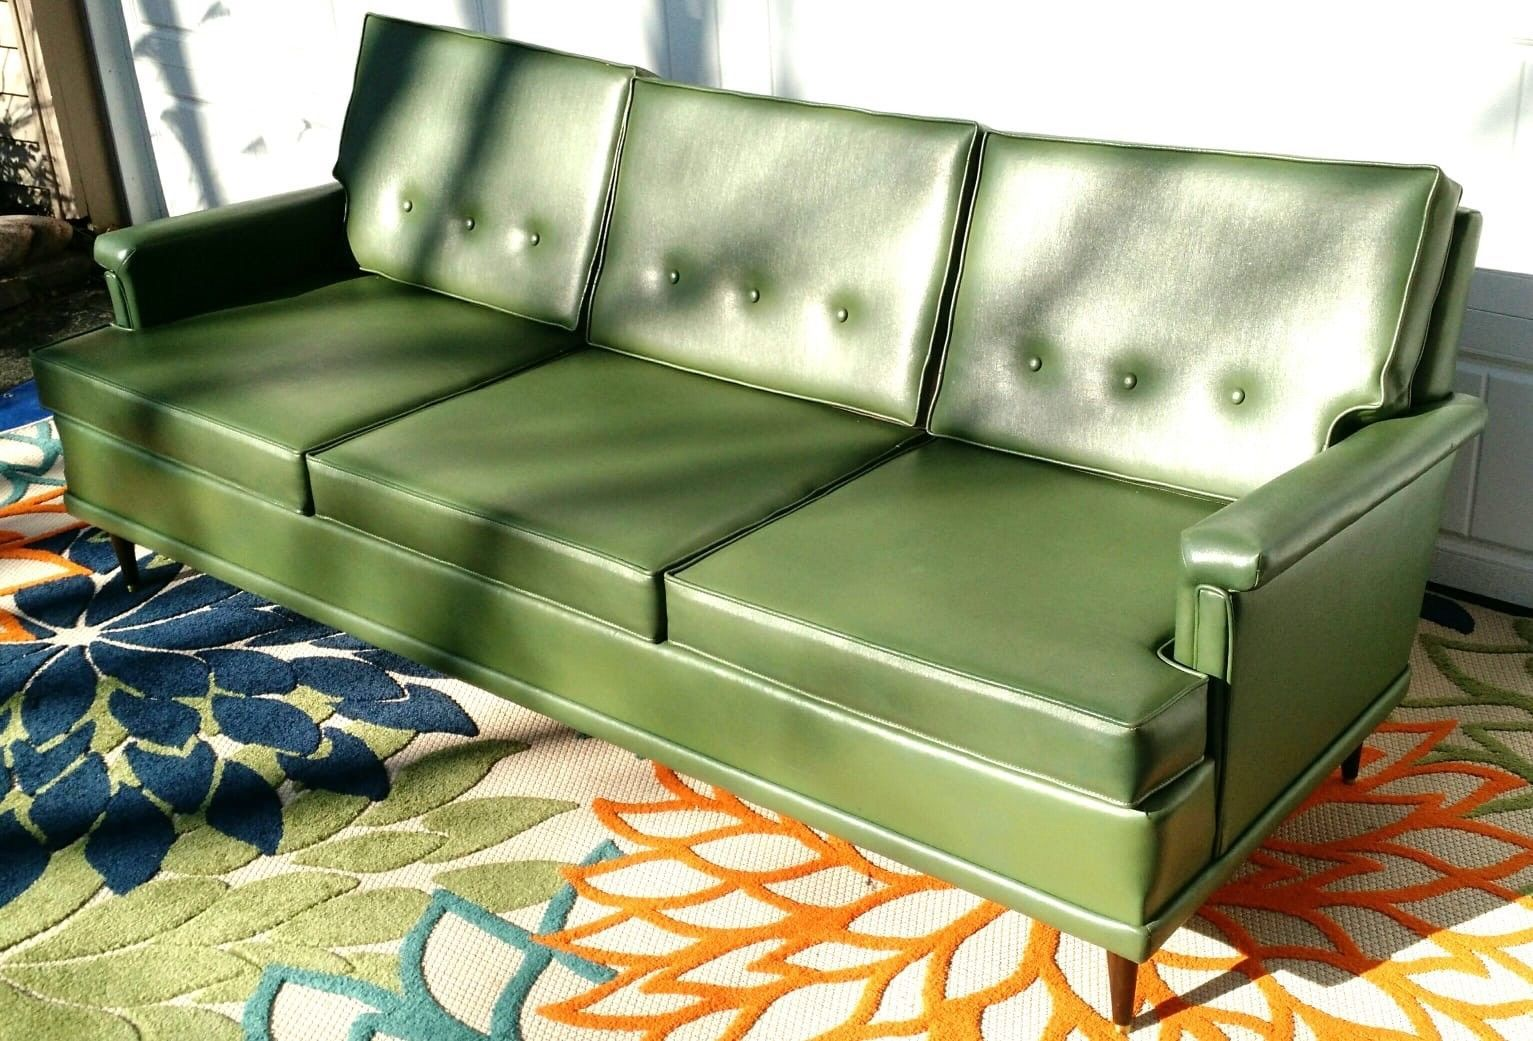 Groovy Details About Mid Century Modern Lounge Chair And Couch Caraccident5 Cool Chair Designs And Ideas Caraccident5Info